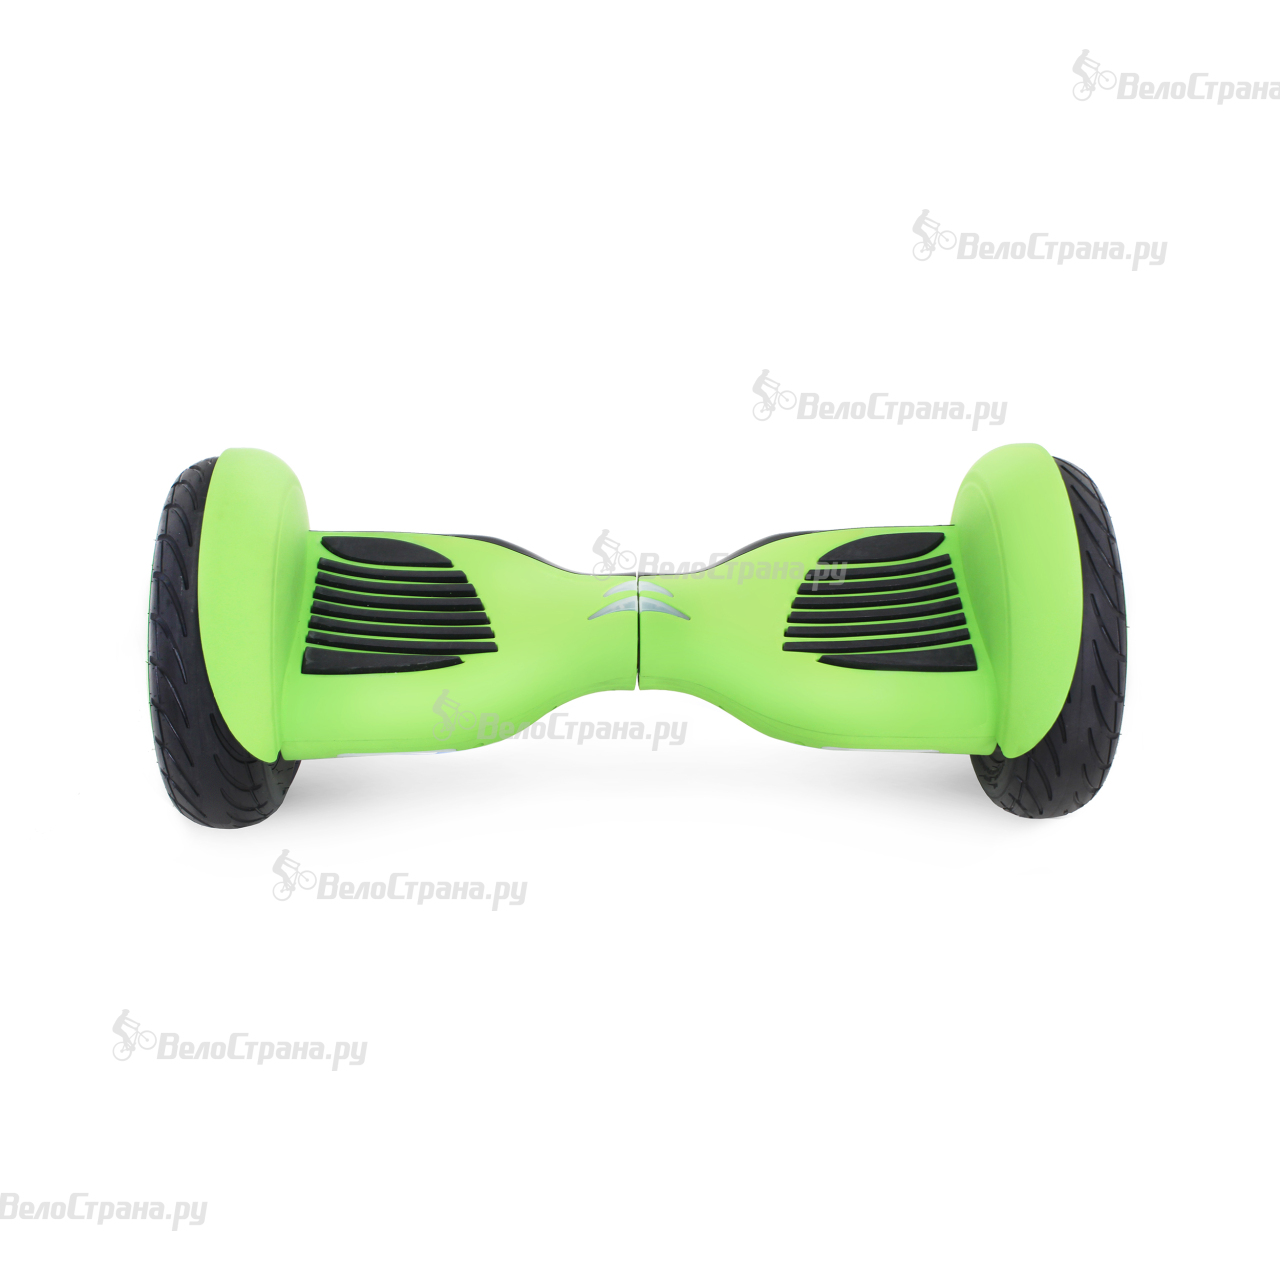 Гироскутер Hoverbot C-2 Light Matte green black штатив cheeese chechil 2 light green